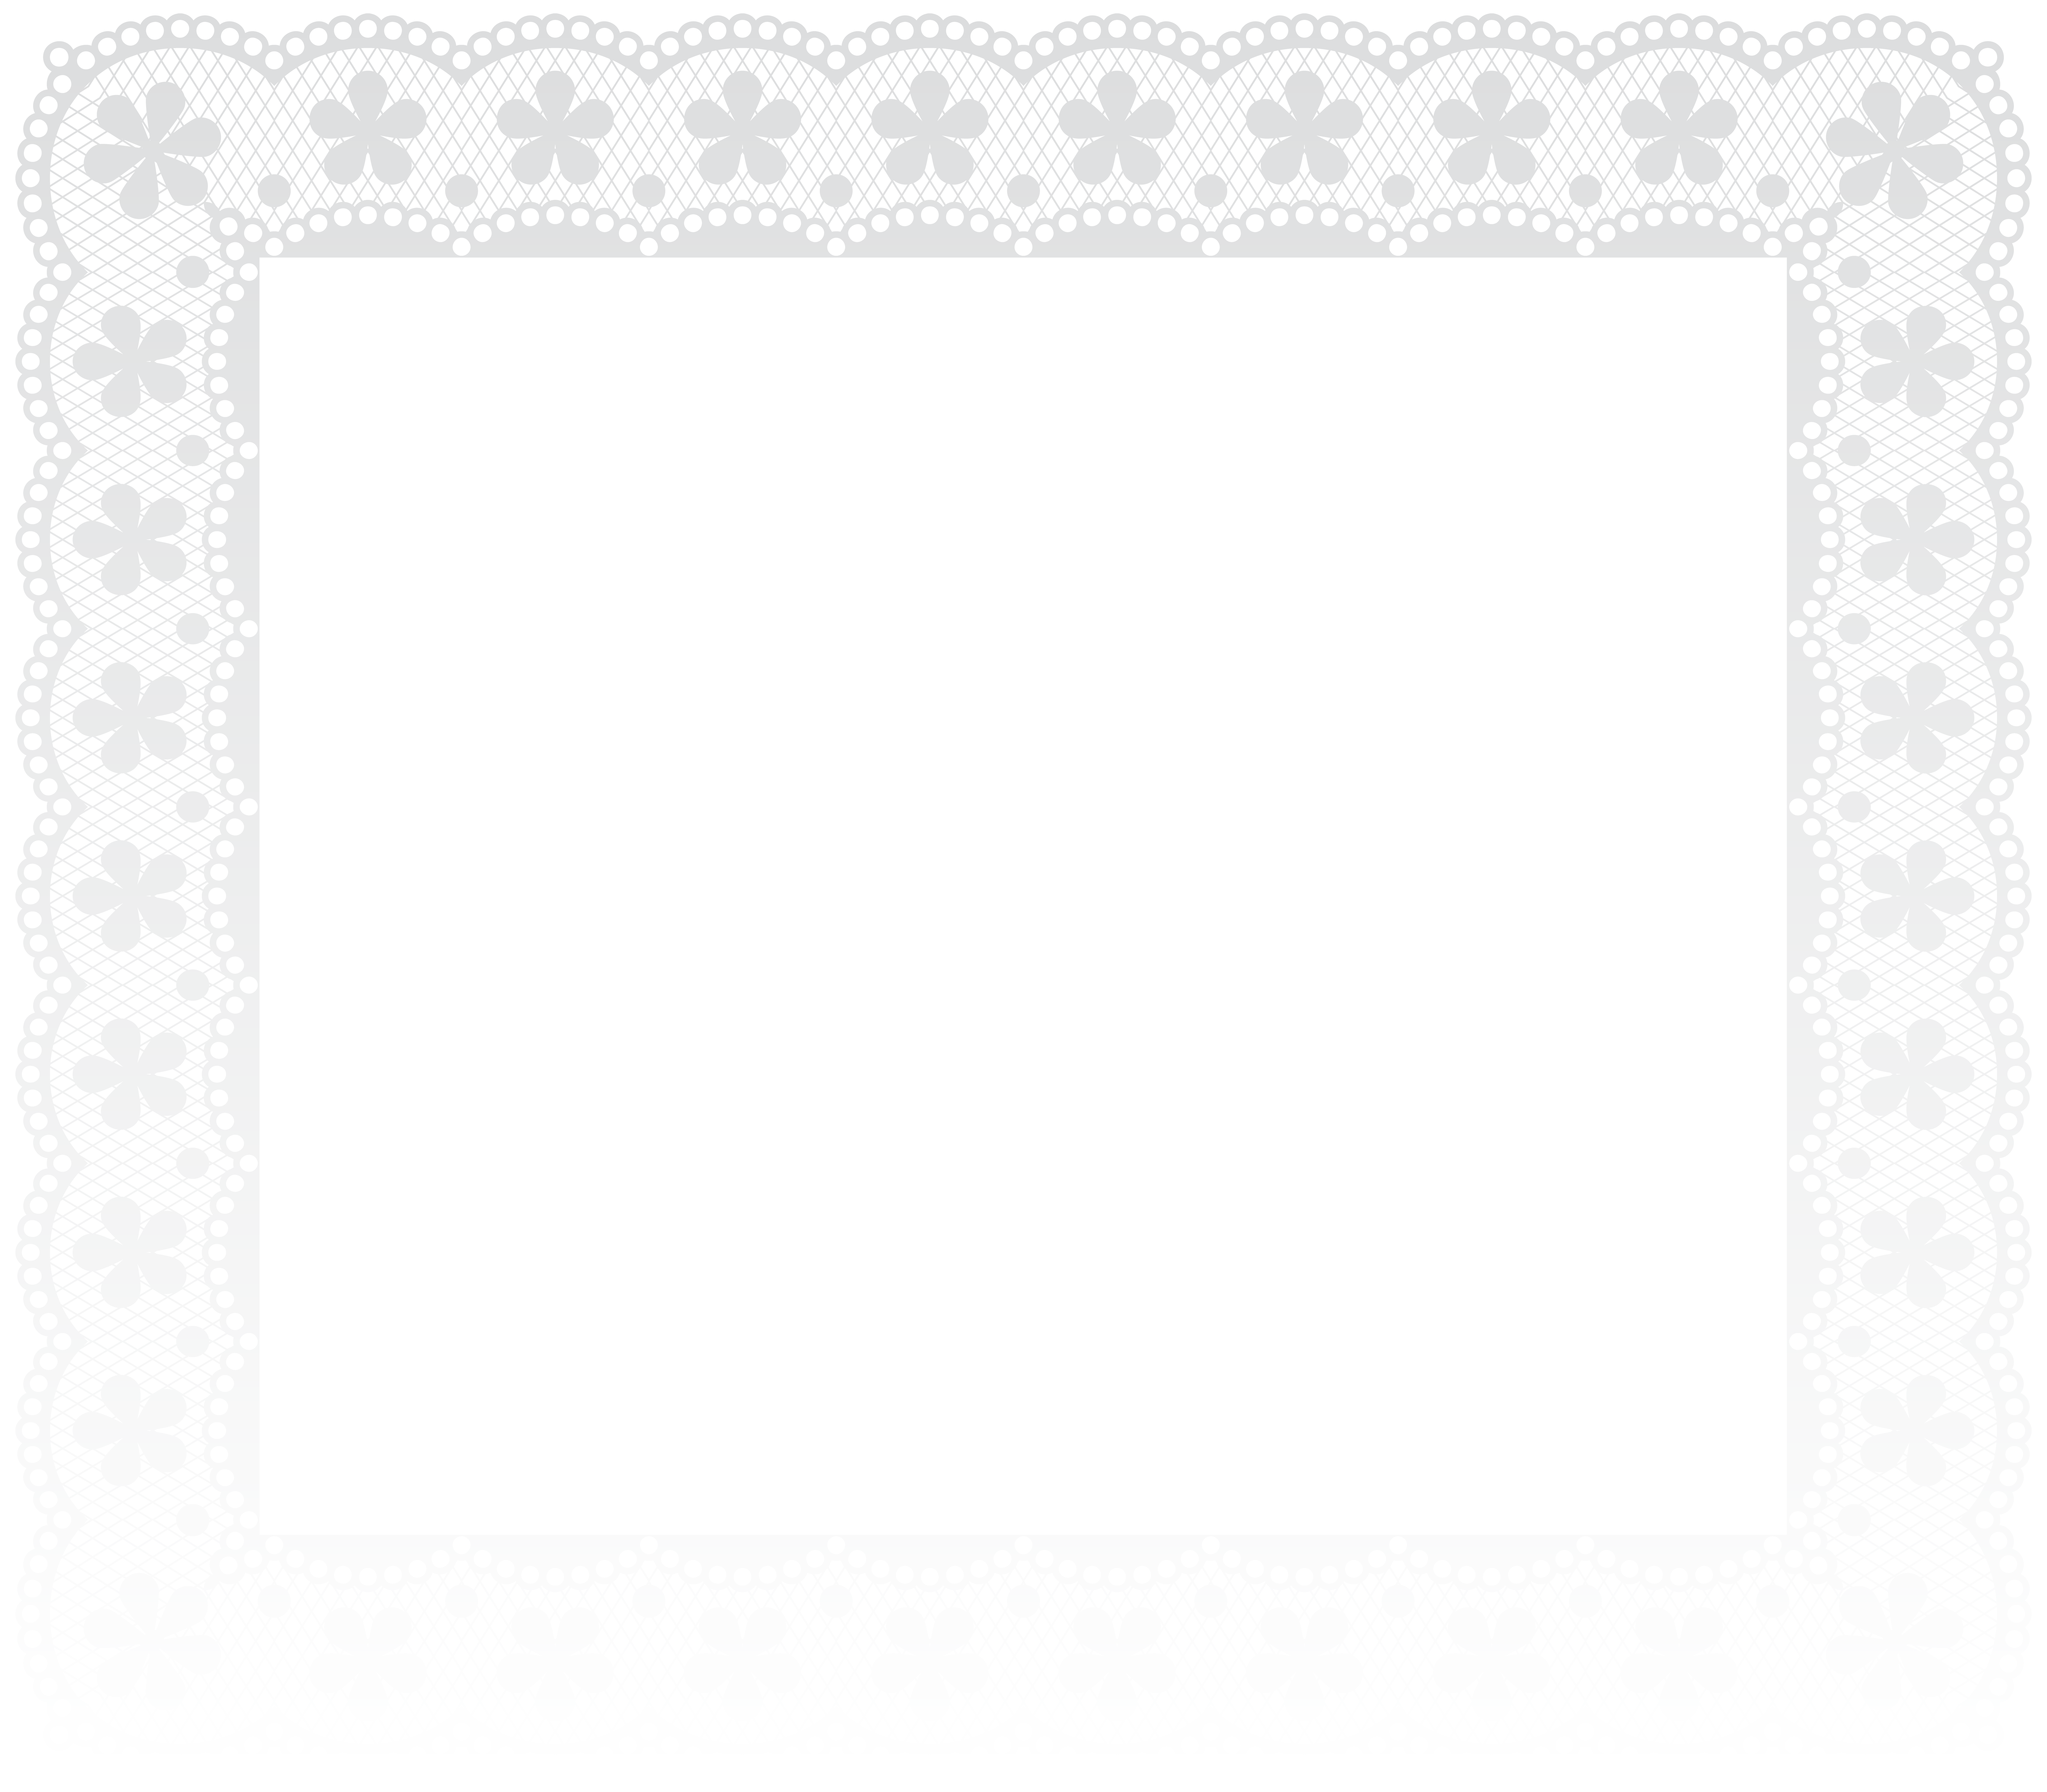 svg royalty free stock Border frame png clip. White lace clipart